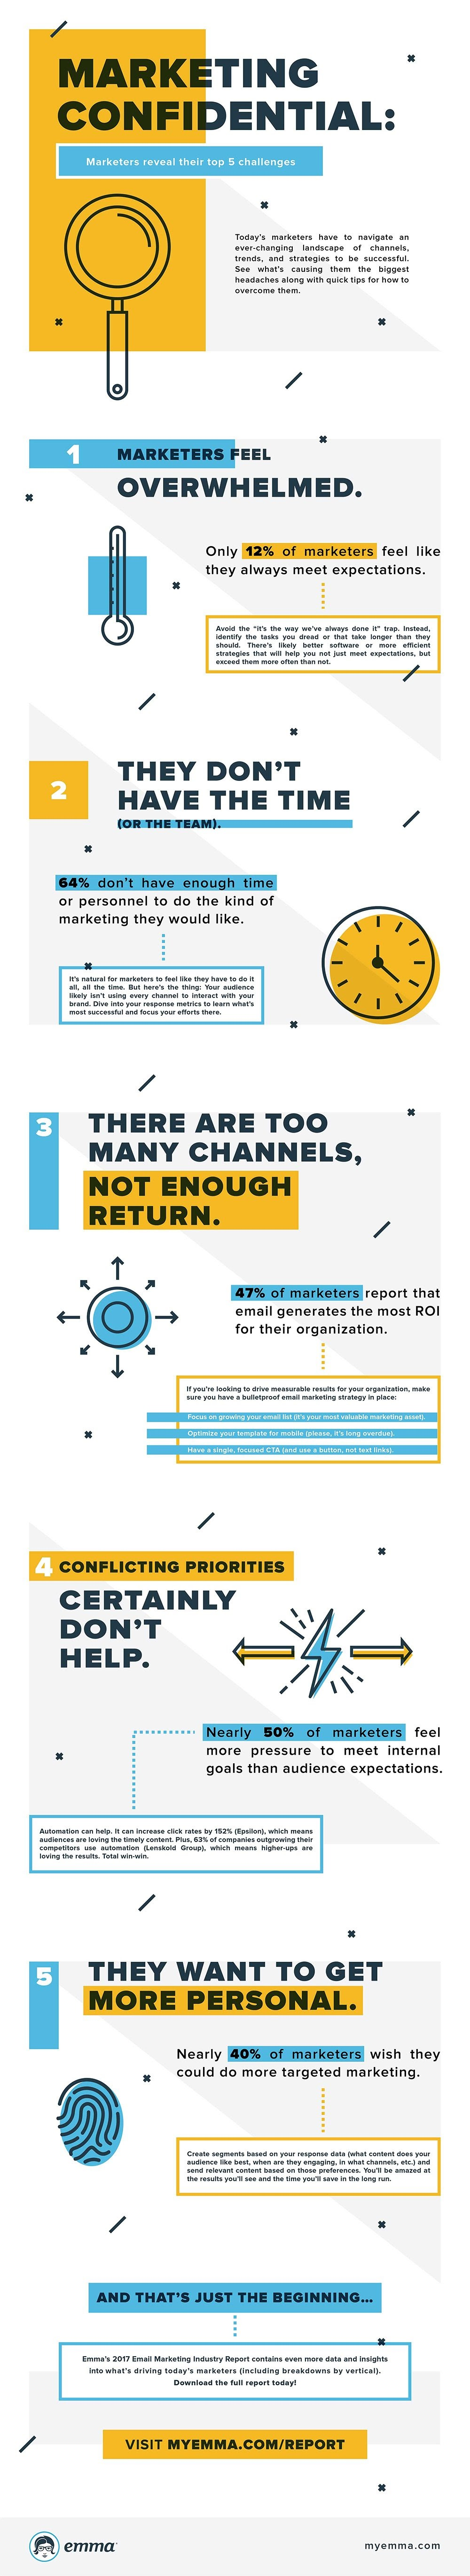 Marketing Confidential: Marketers reveal their top 5 challenges - #infographic